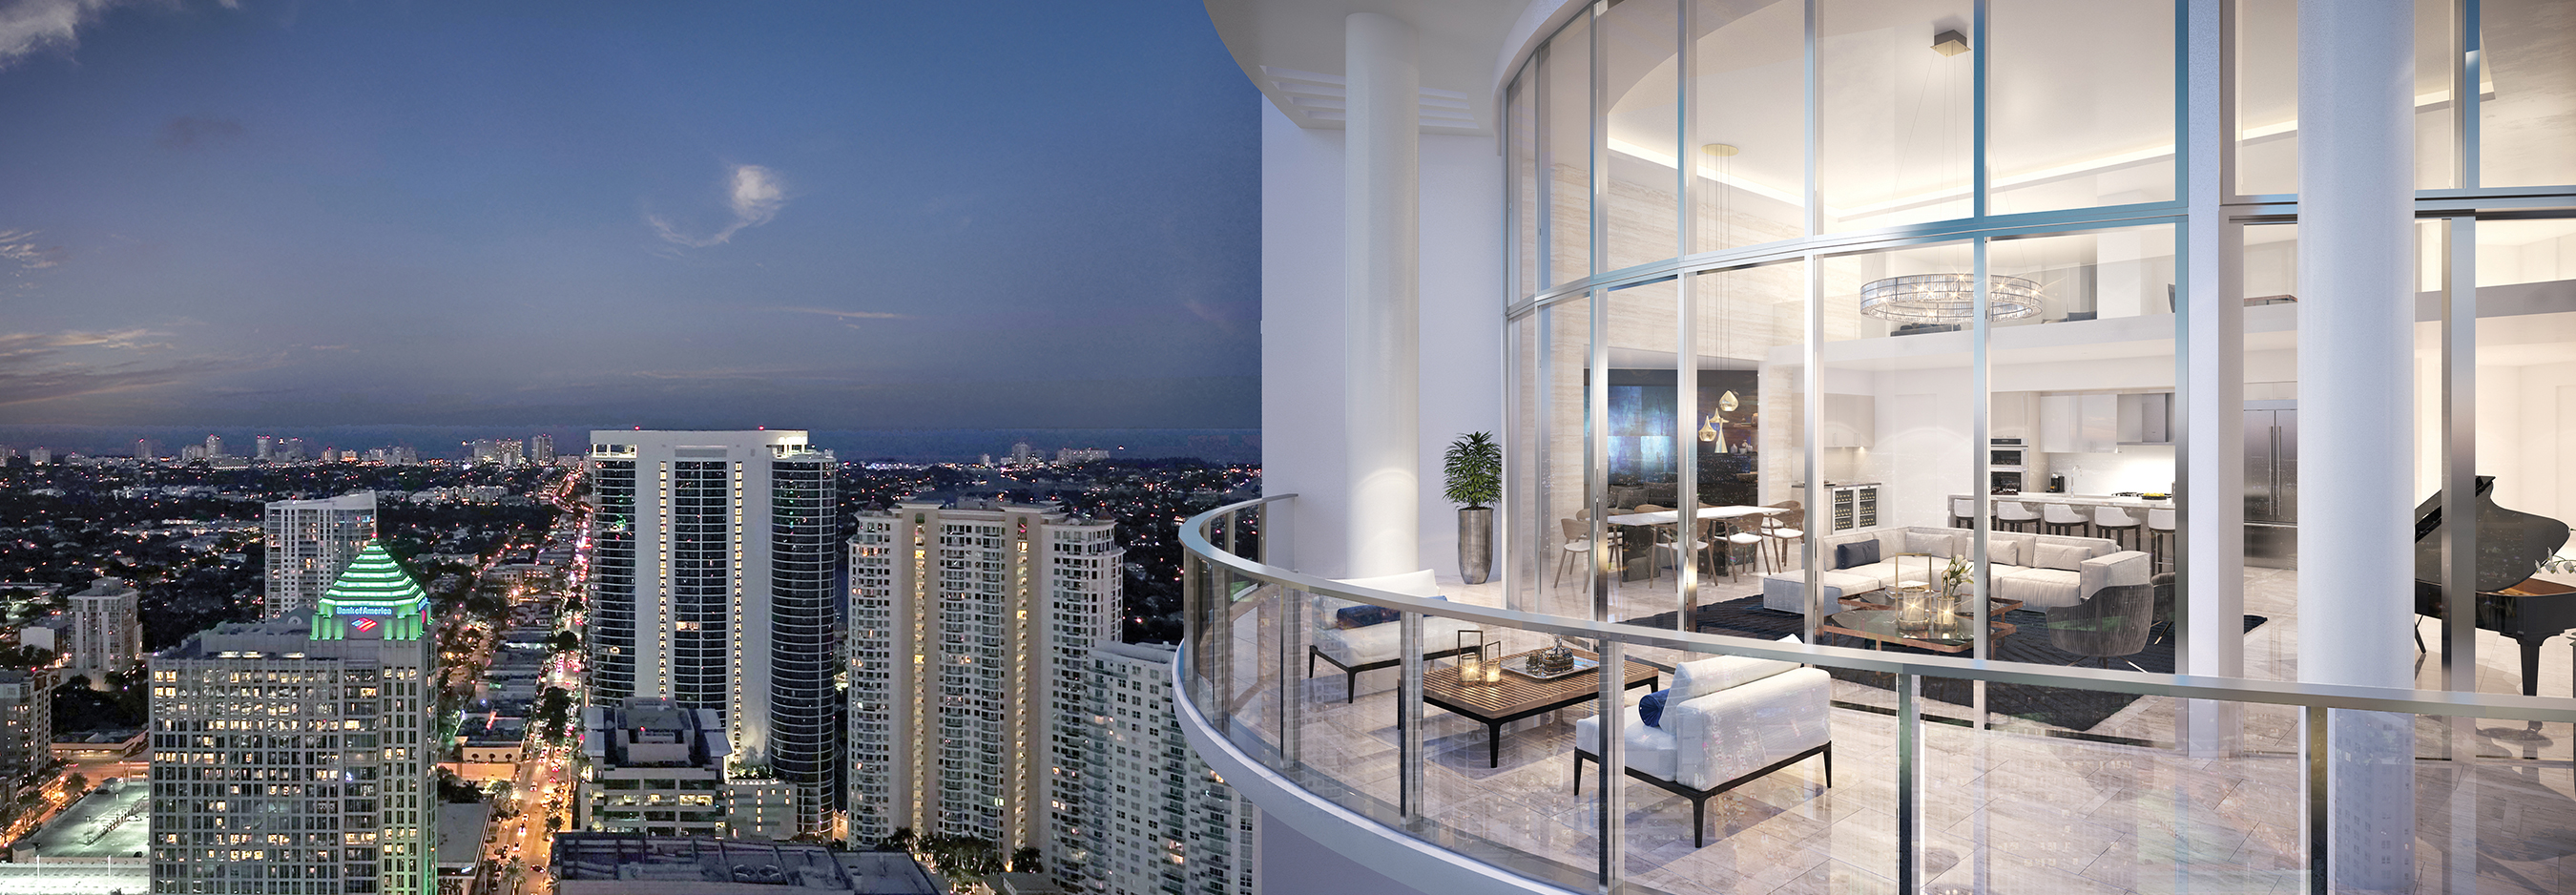 100 Las Olas Penthouse 4603 Terrace Night Rendering